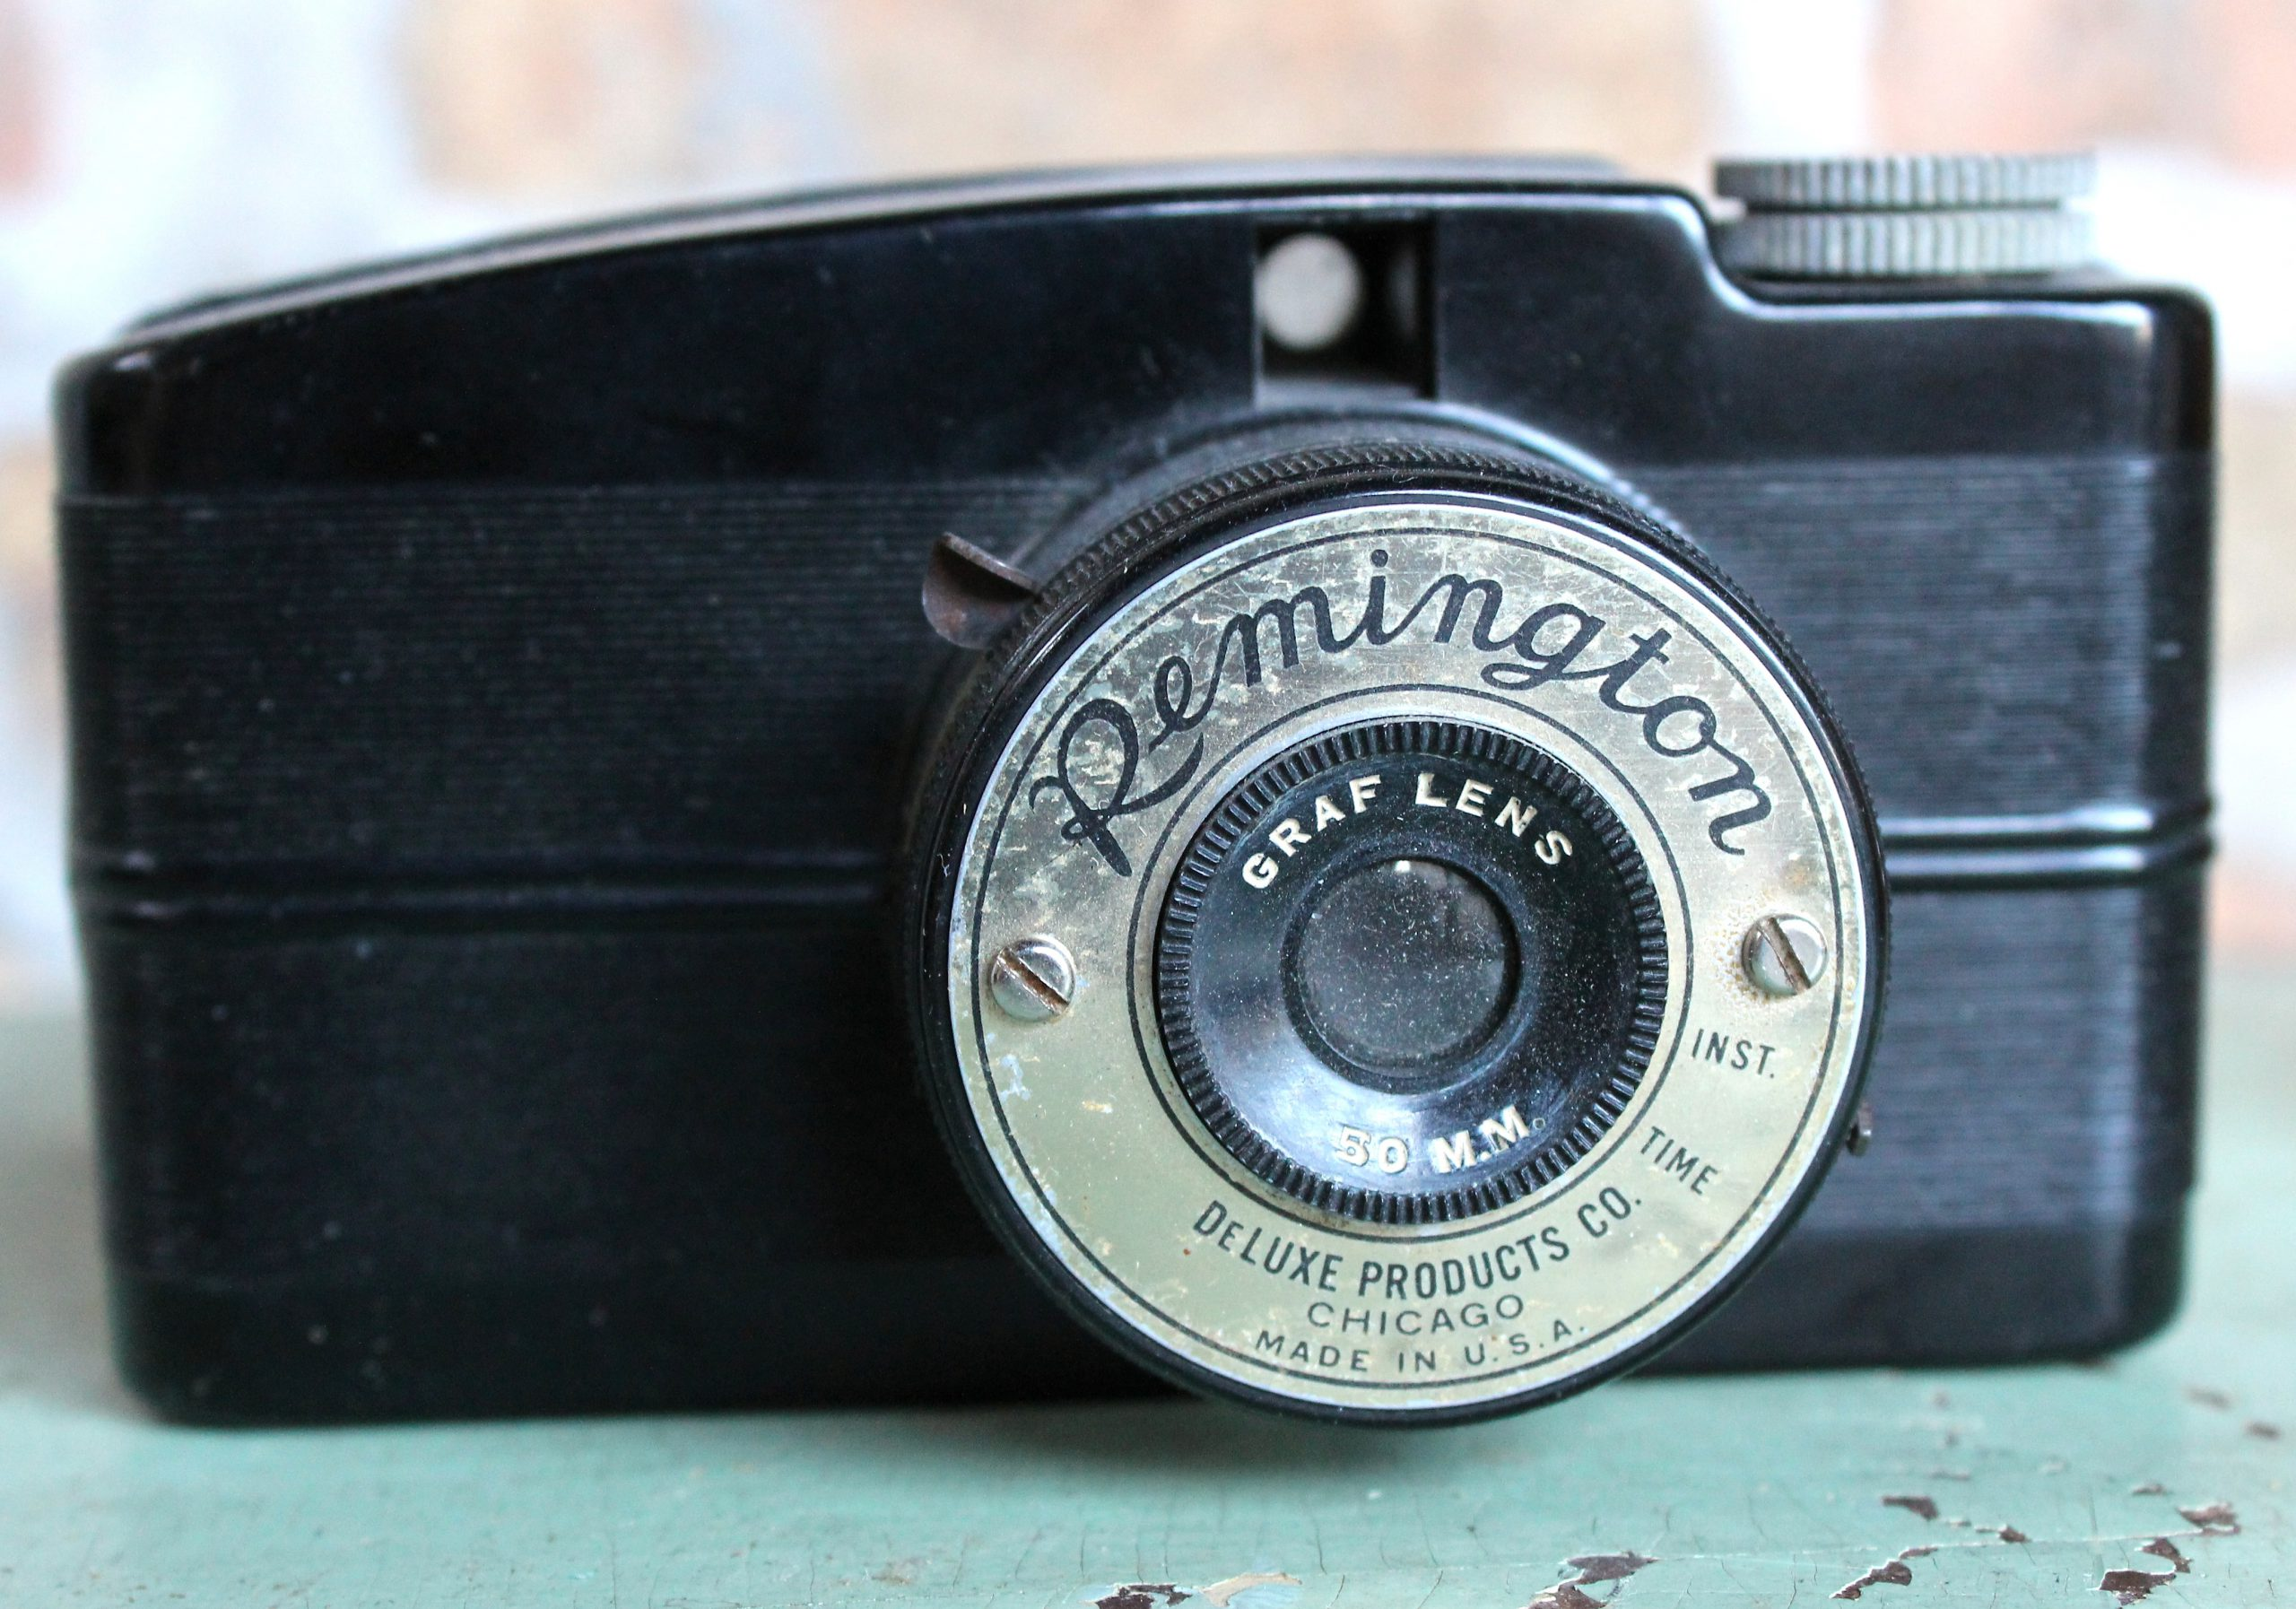 Remington Miniature Bakelite Cameras by DeLuxe Products Co., c. 1940